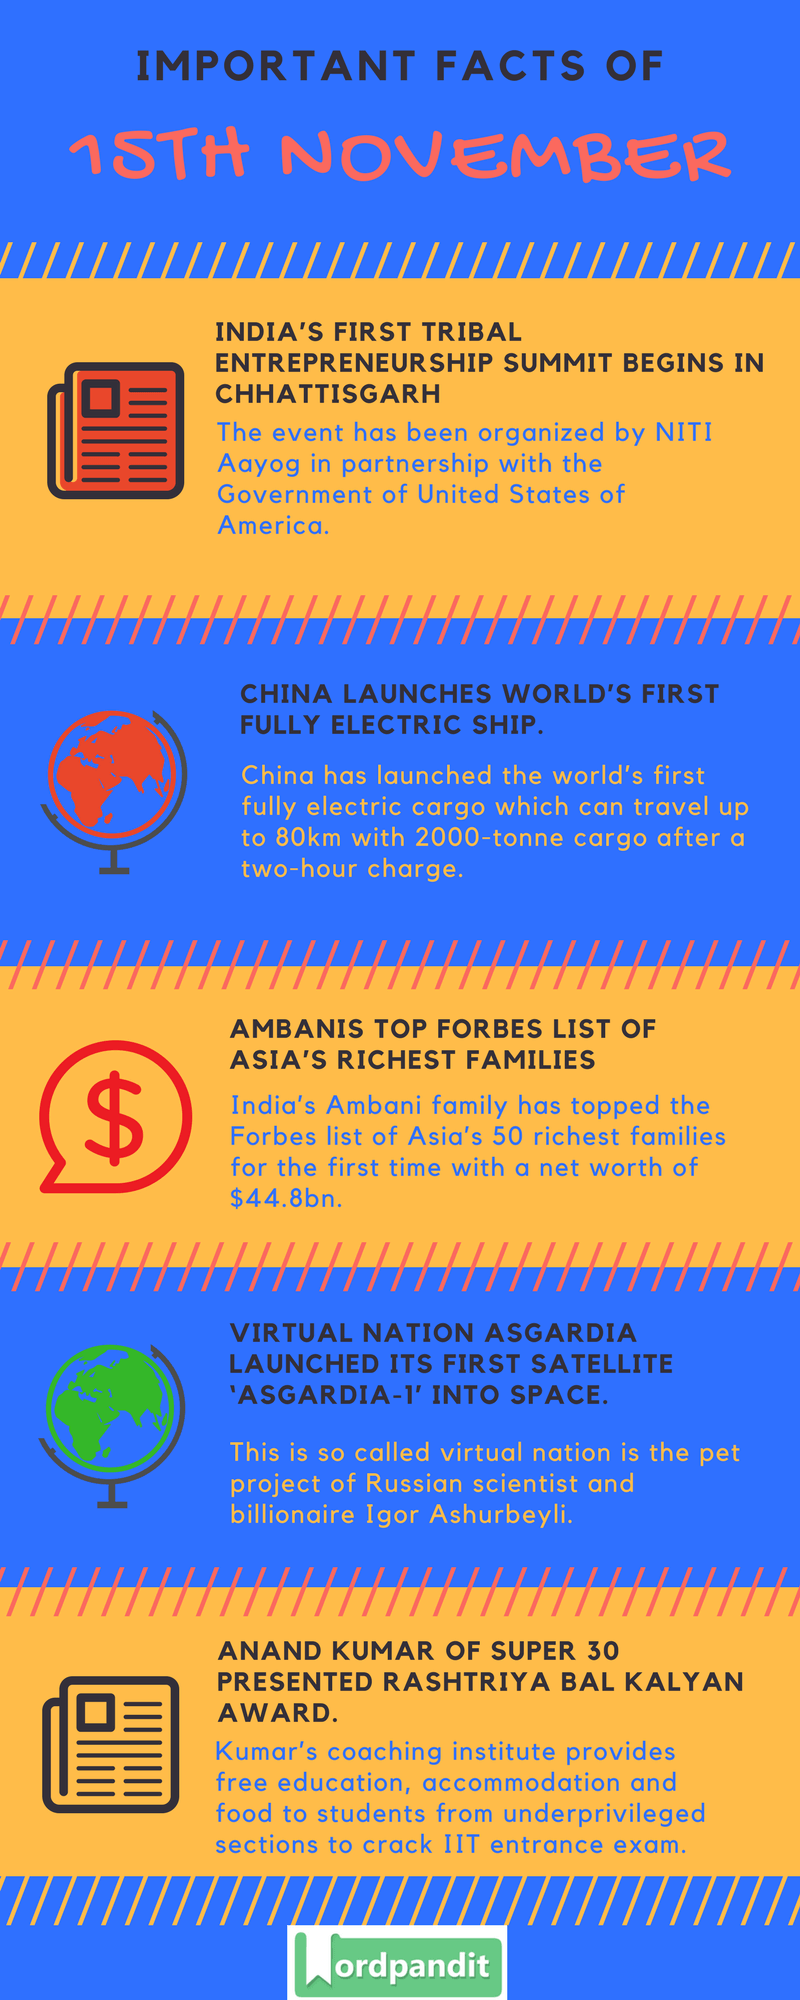 Daily-Current-Affairs-15-november-2017-Current-Affairs-Quiz-november-15-2017-Current-Affairs-Infographic